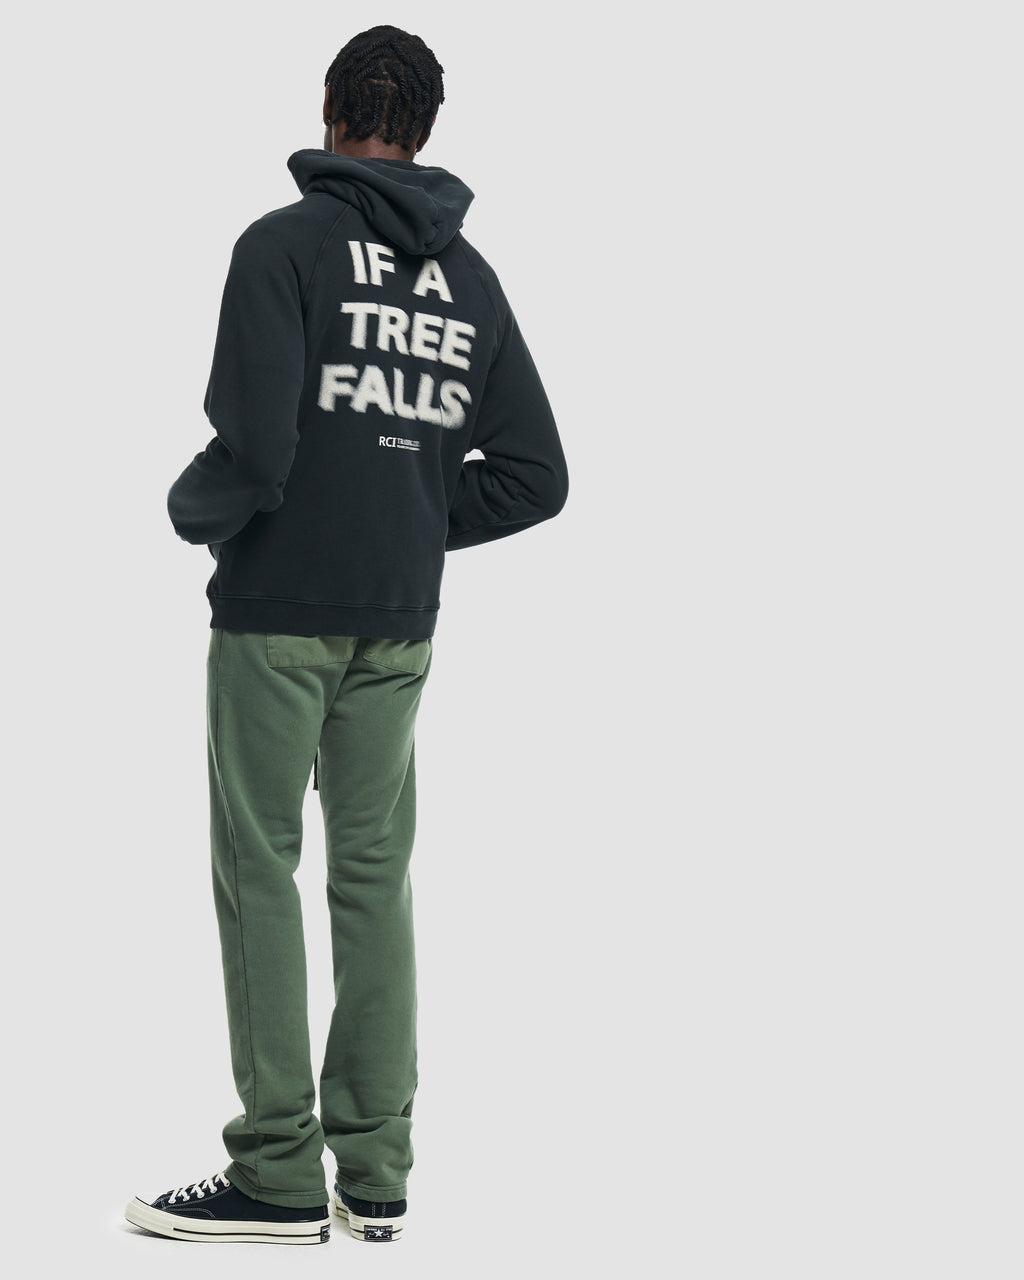 If A Tree Falls Hooded Sweatshirt in Black